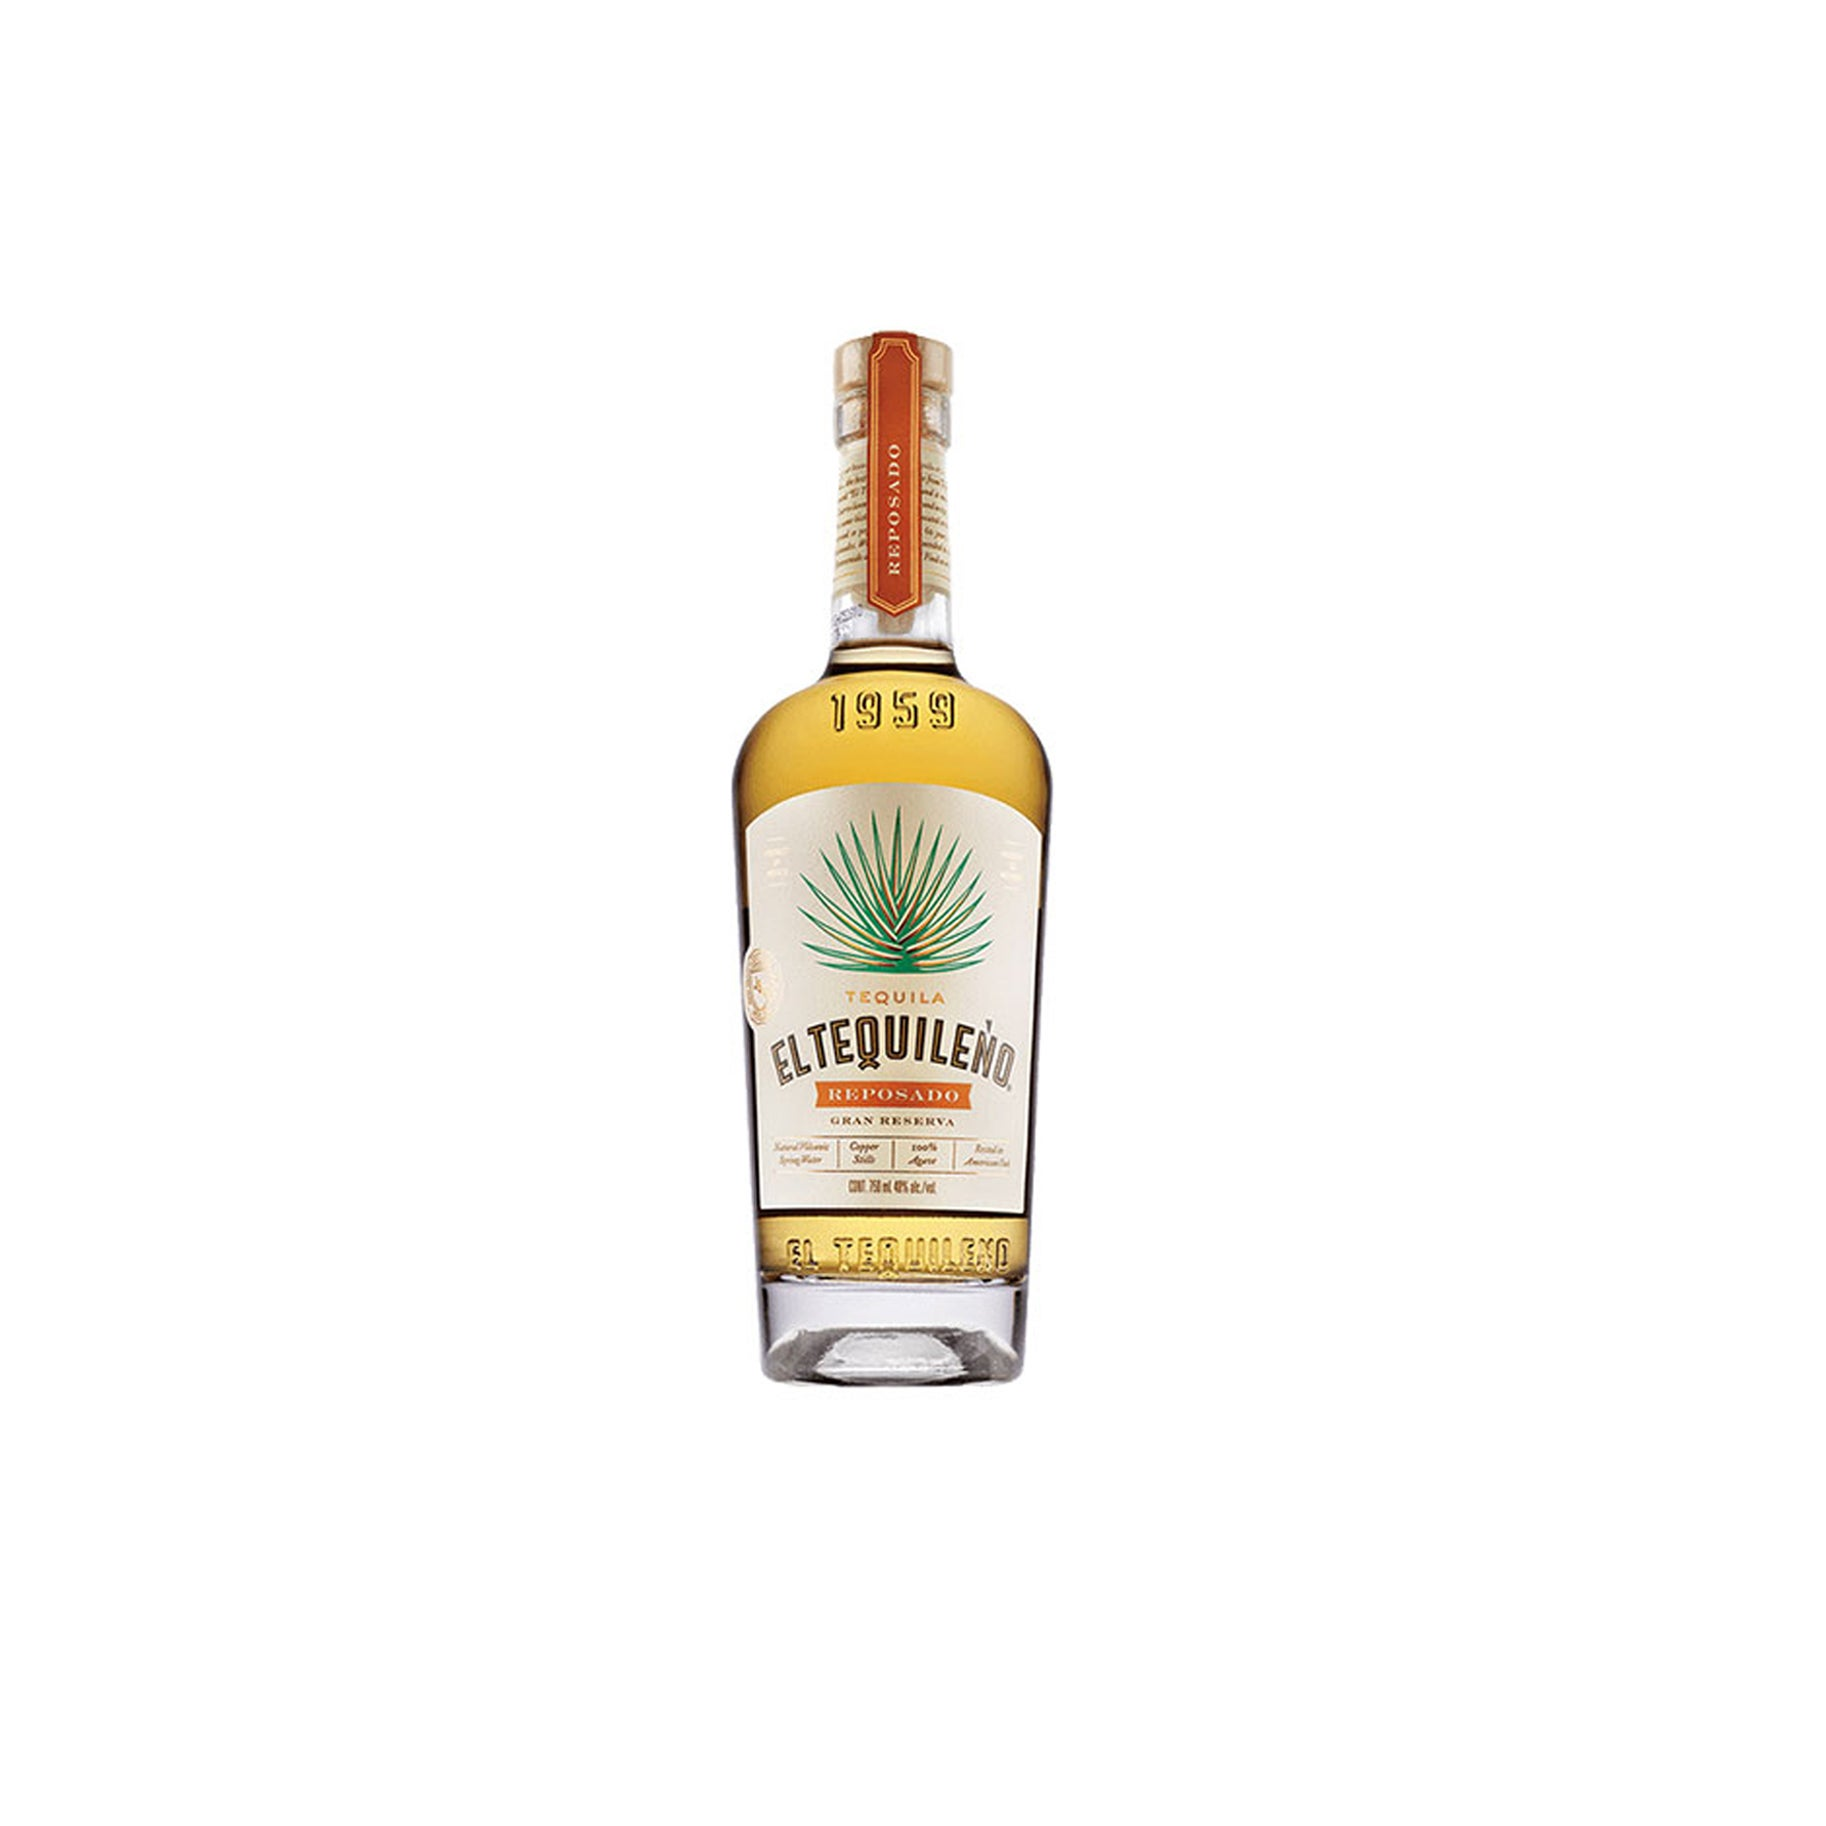 The Best Sipping Tequila Option: Tequila El Tequileño Reposado Gran Reserva